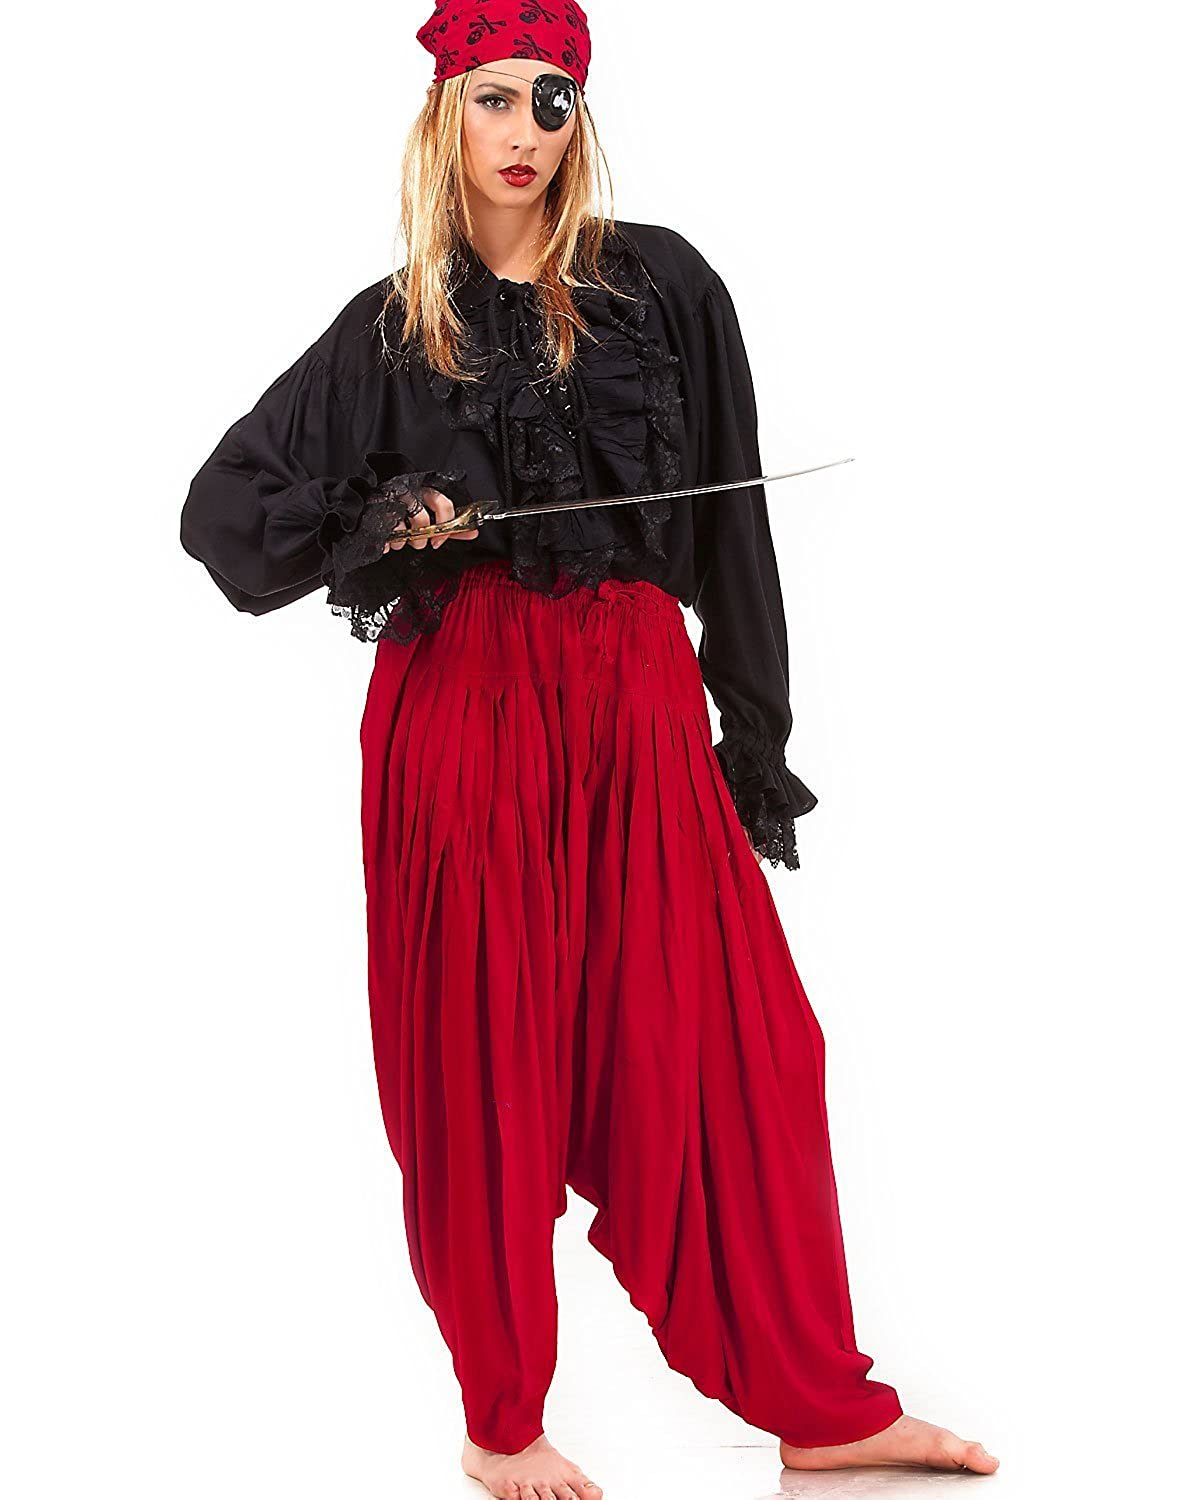 Medieval Renaissance Women Pirate's Red Patiala Costume Pants - DeluxeAdultCostumes.com